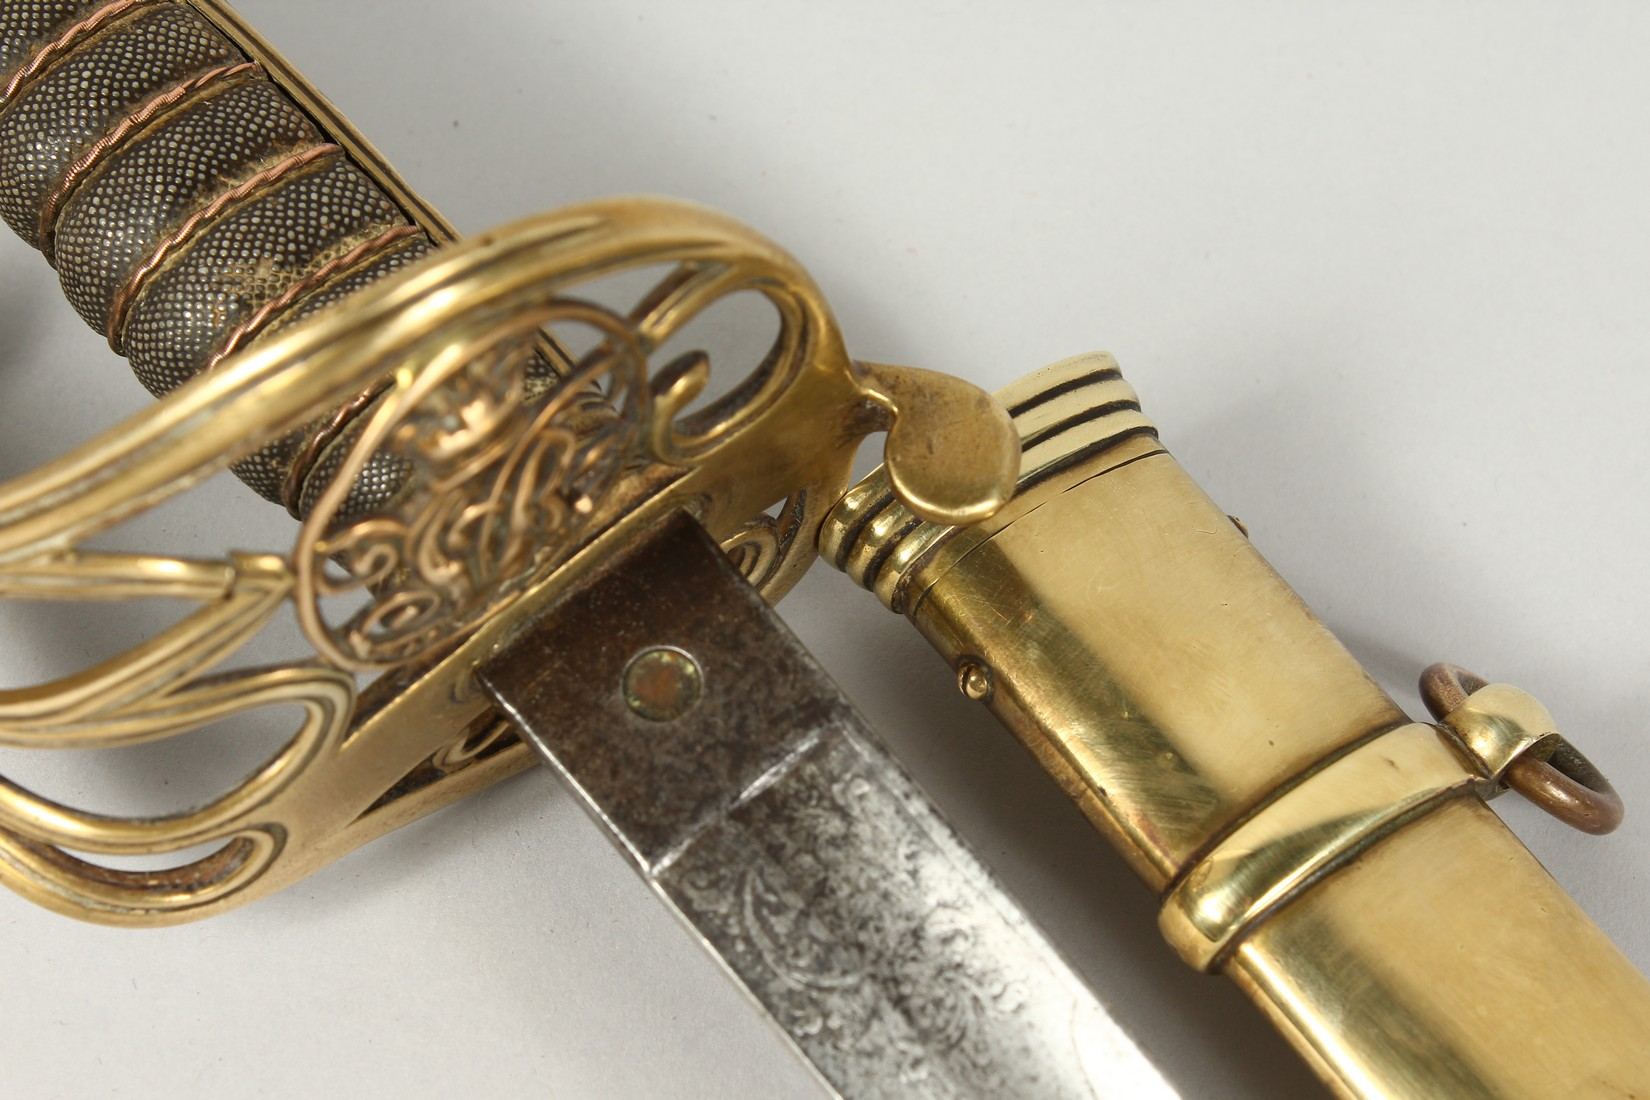 A GOOD VICTORIAN NAVAL SWORD with shagreen handle and engraved blade, V R & Crown inc., brown - Image 11 of 25